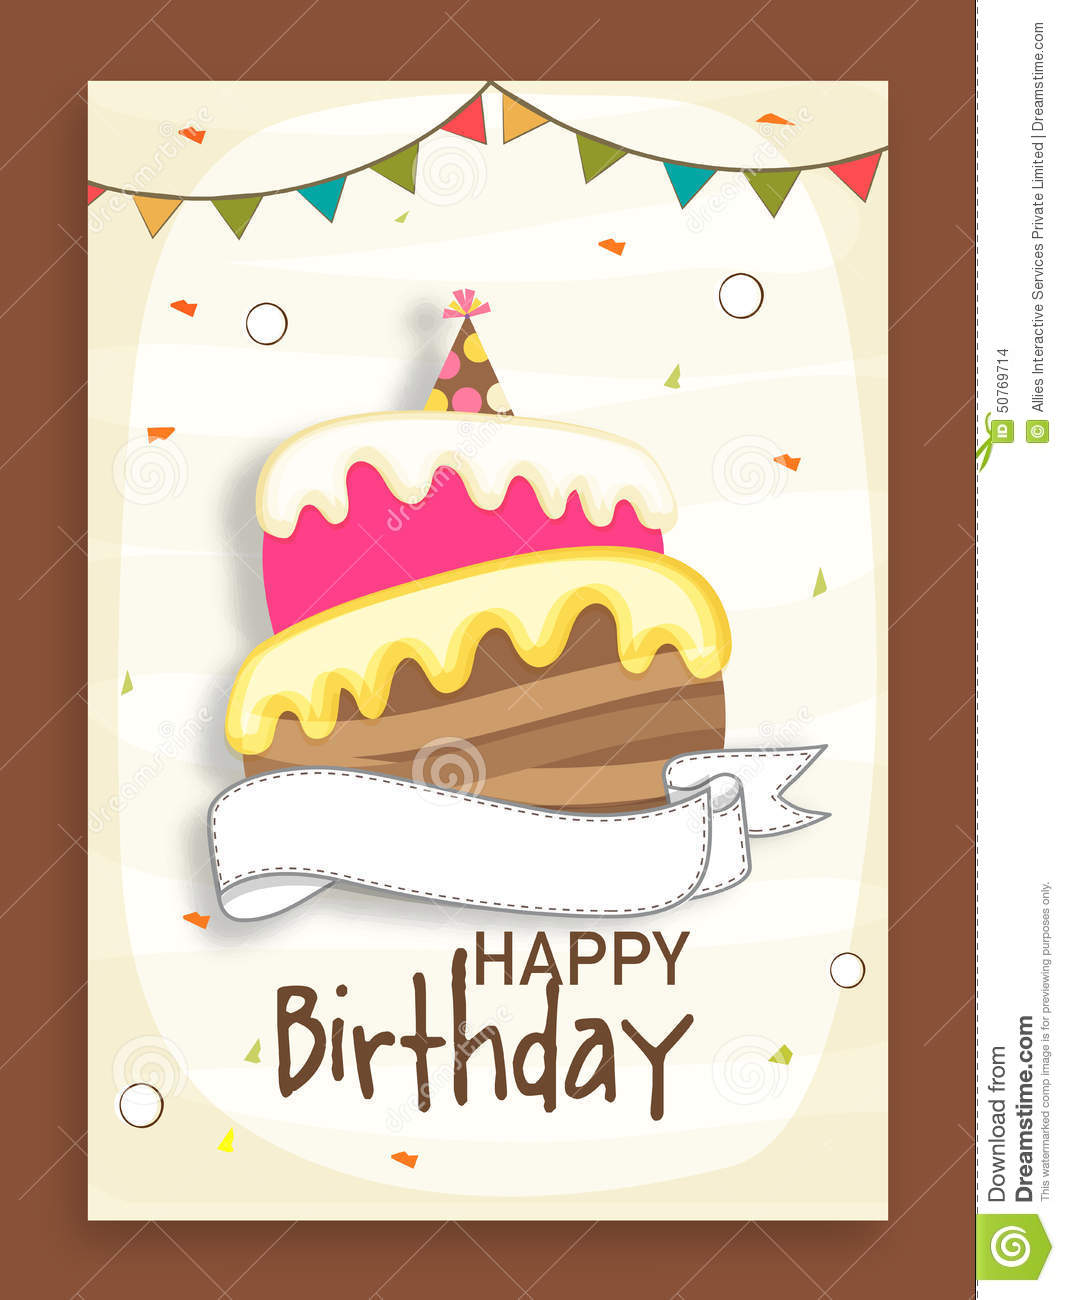 Birthday Party Celebration Invitation Card Design – Birthday Invitations Cards Designs